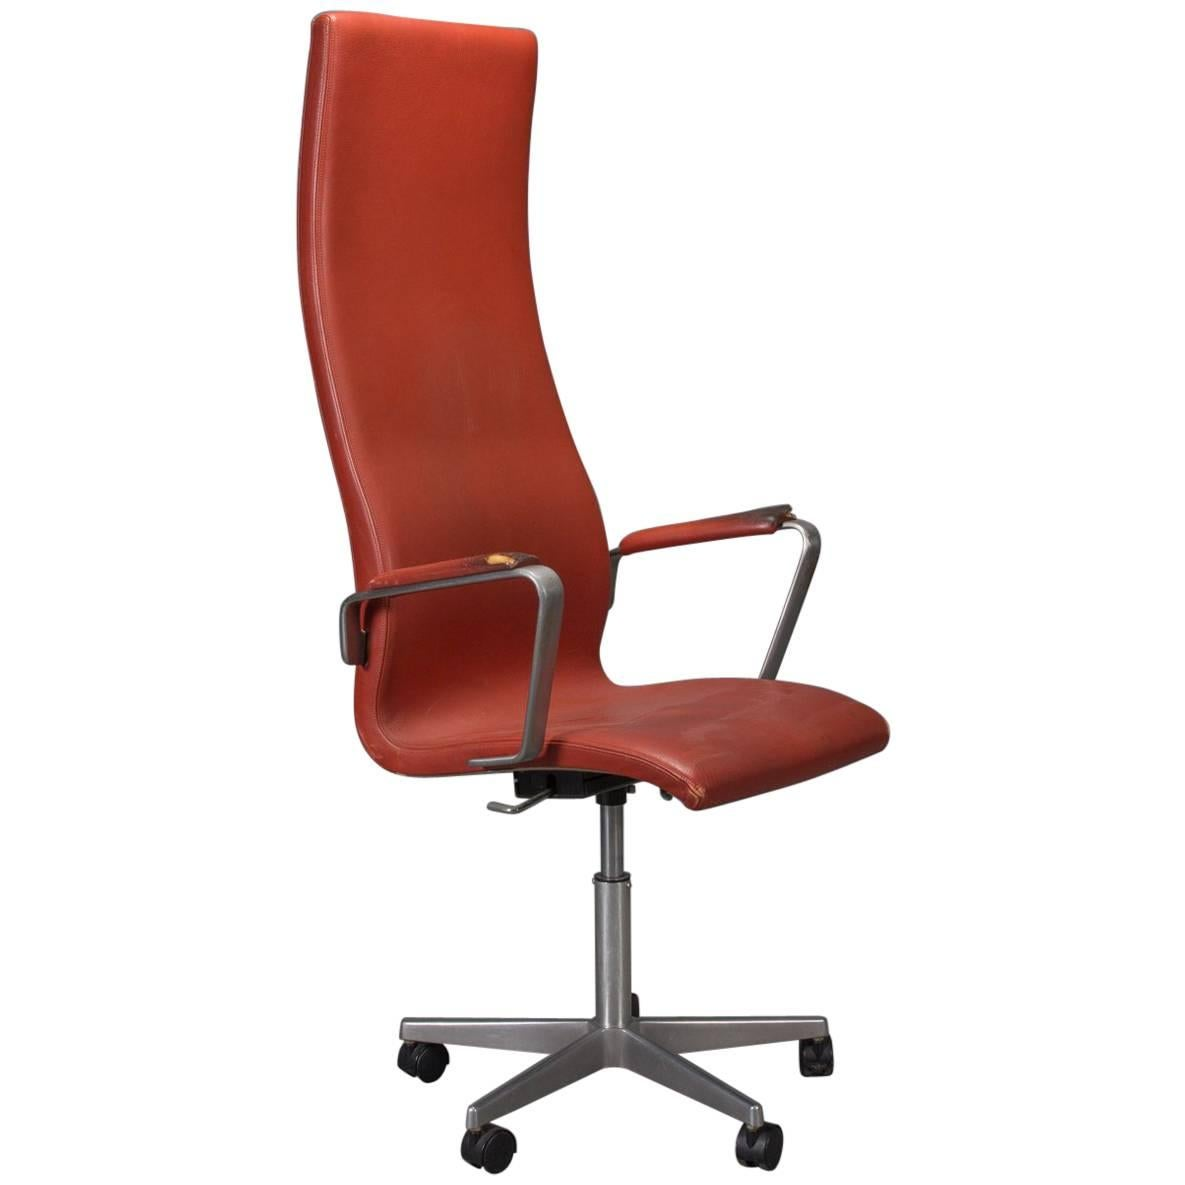 desk chair high antique upholstered rocking styles back leather oxford by arne jacobsen for sale at 1stdibs